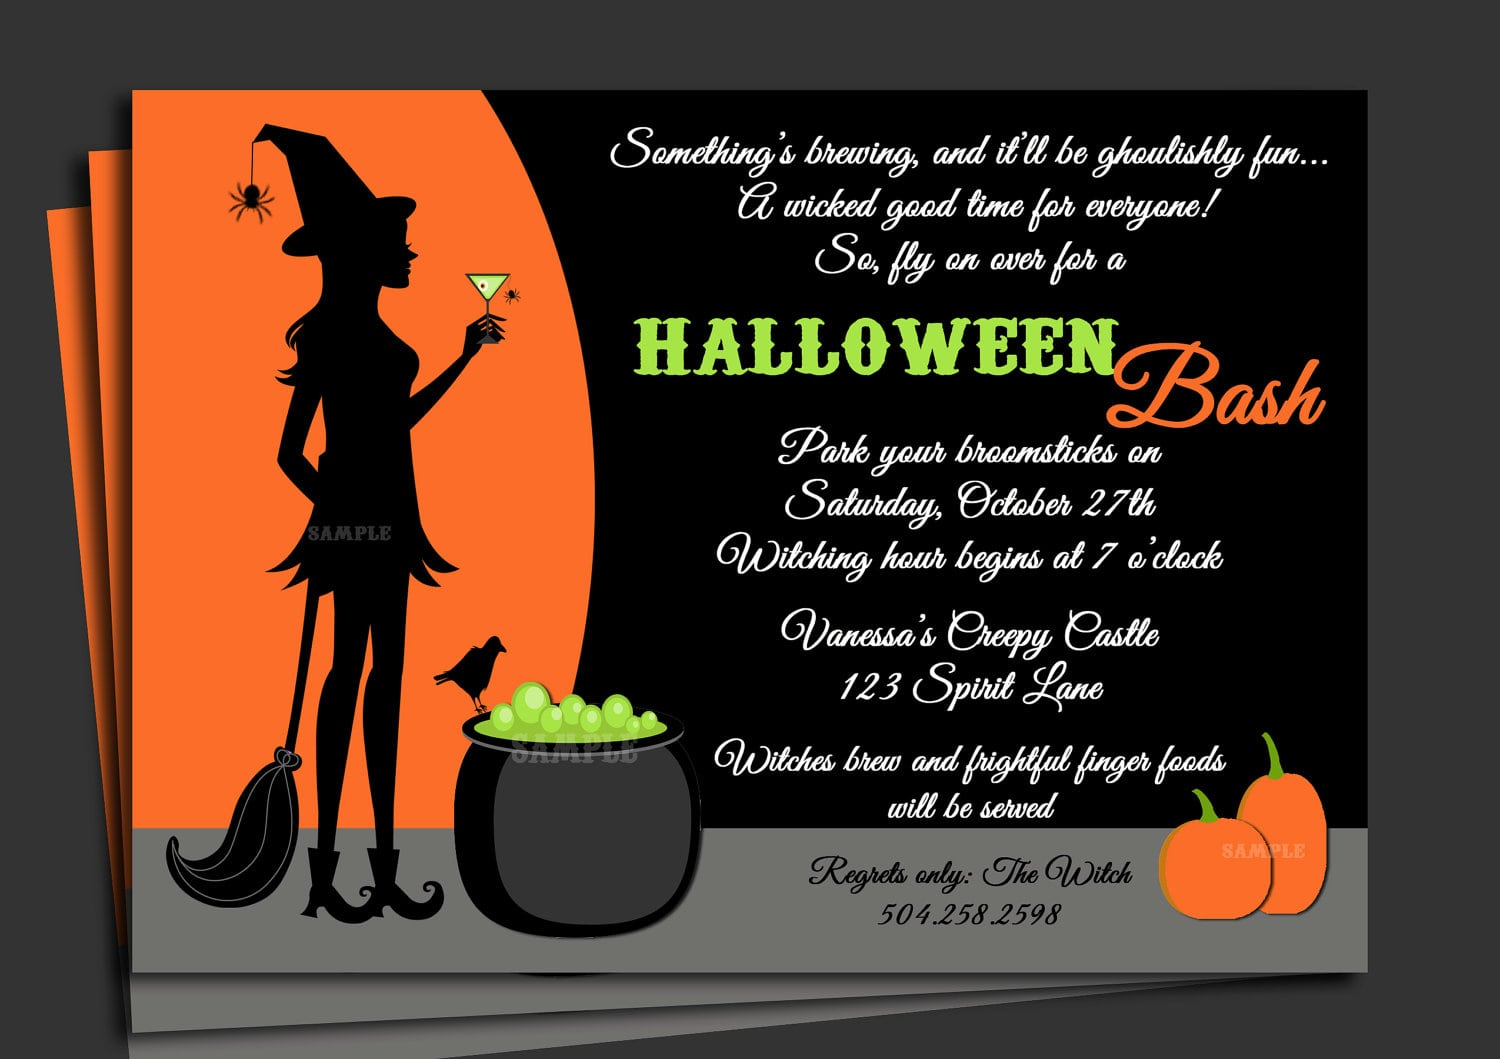 Costume Party Invitation Ideas